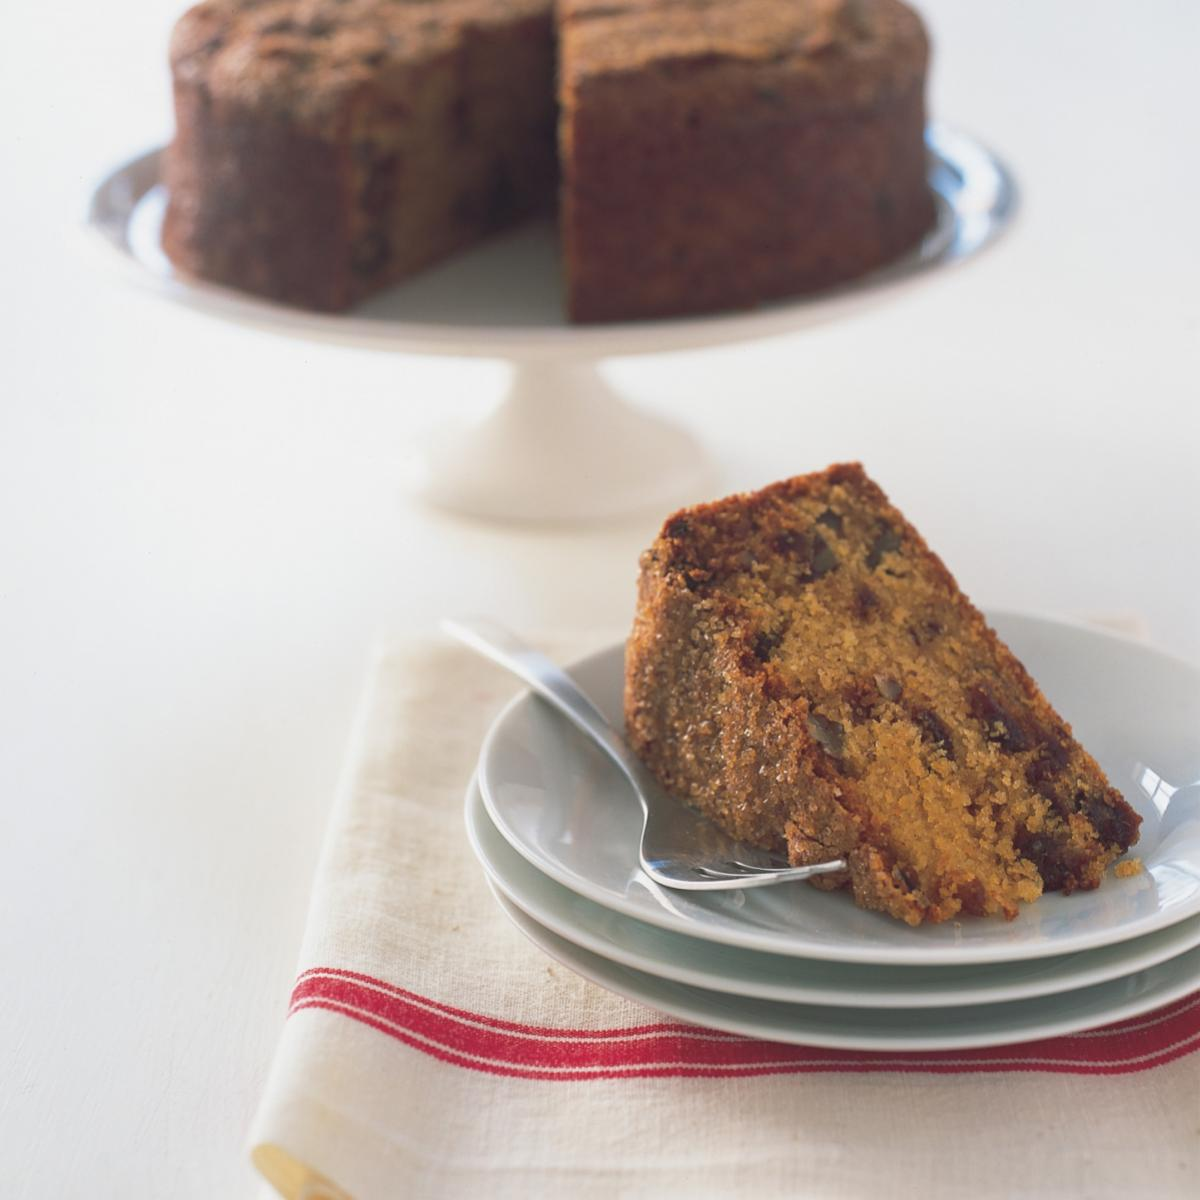 Baking polenta and ricotta cake with dates and pecans